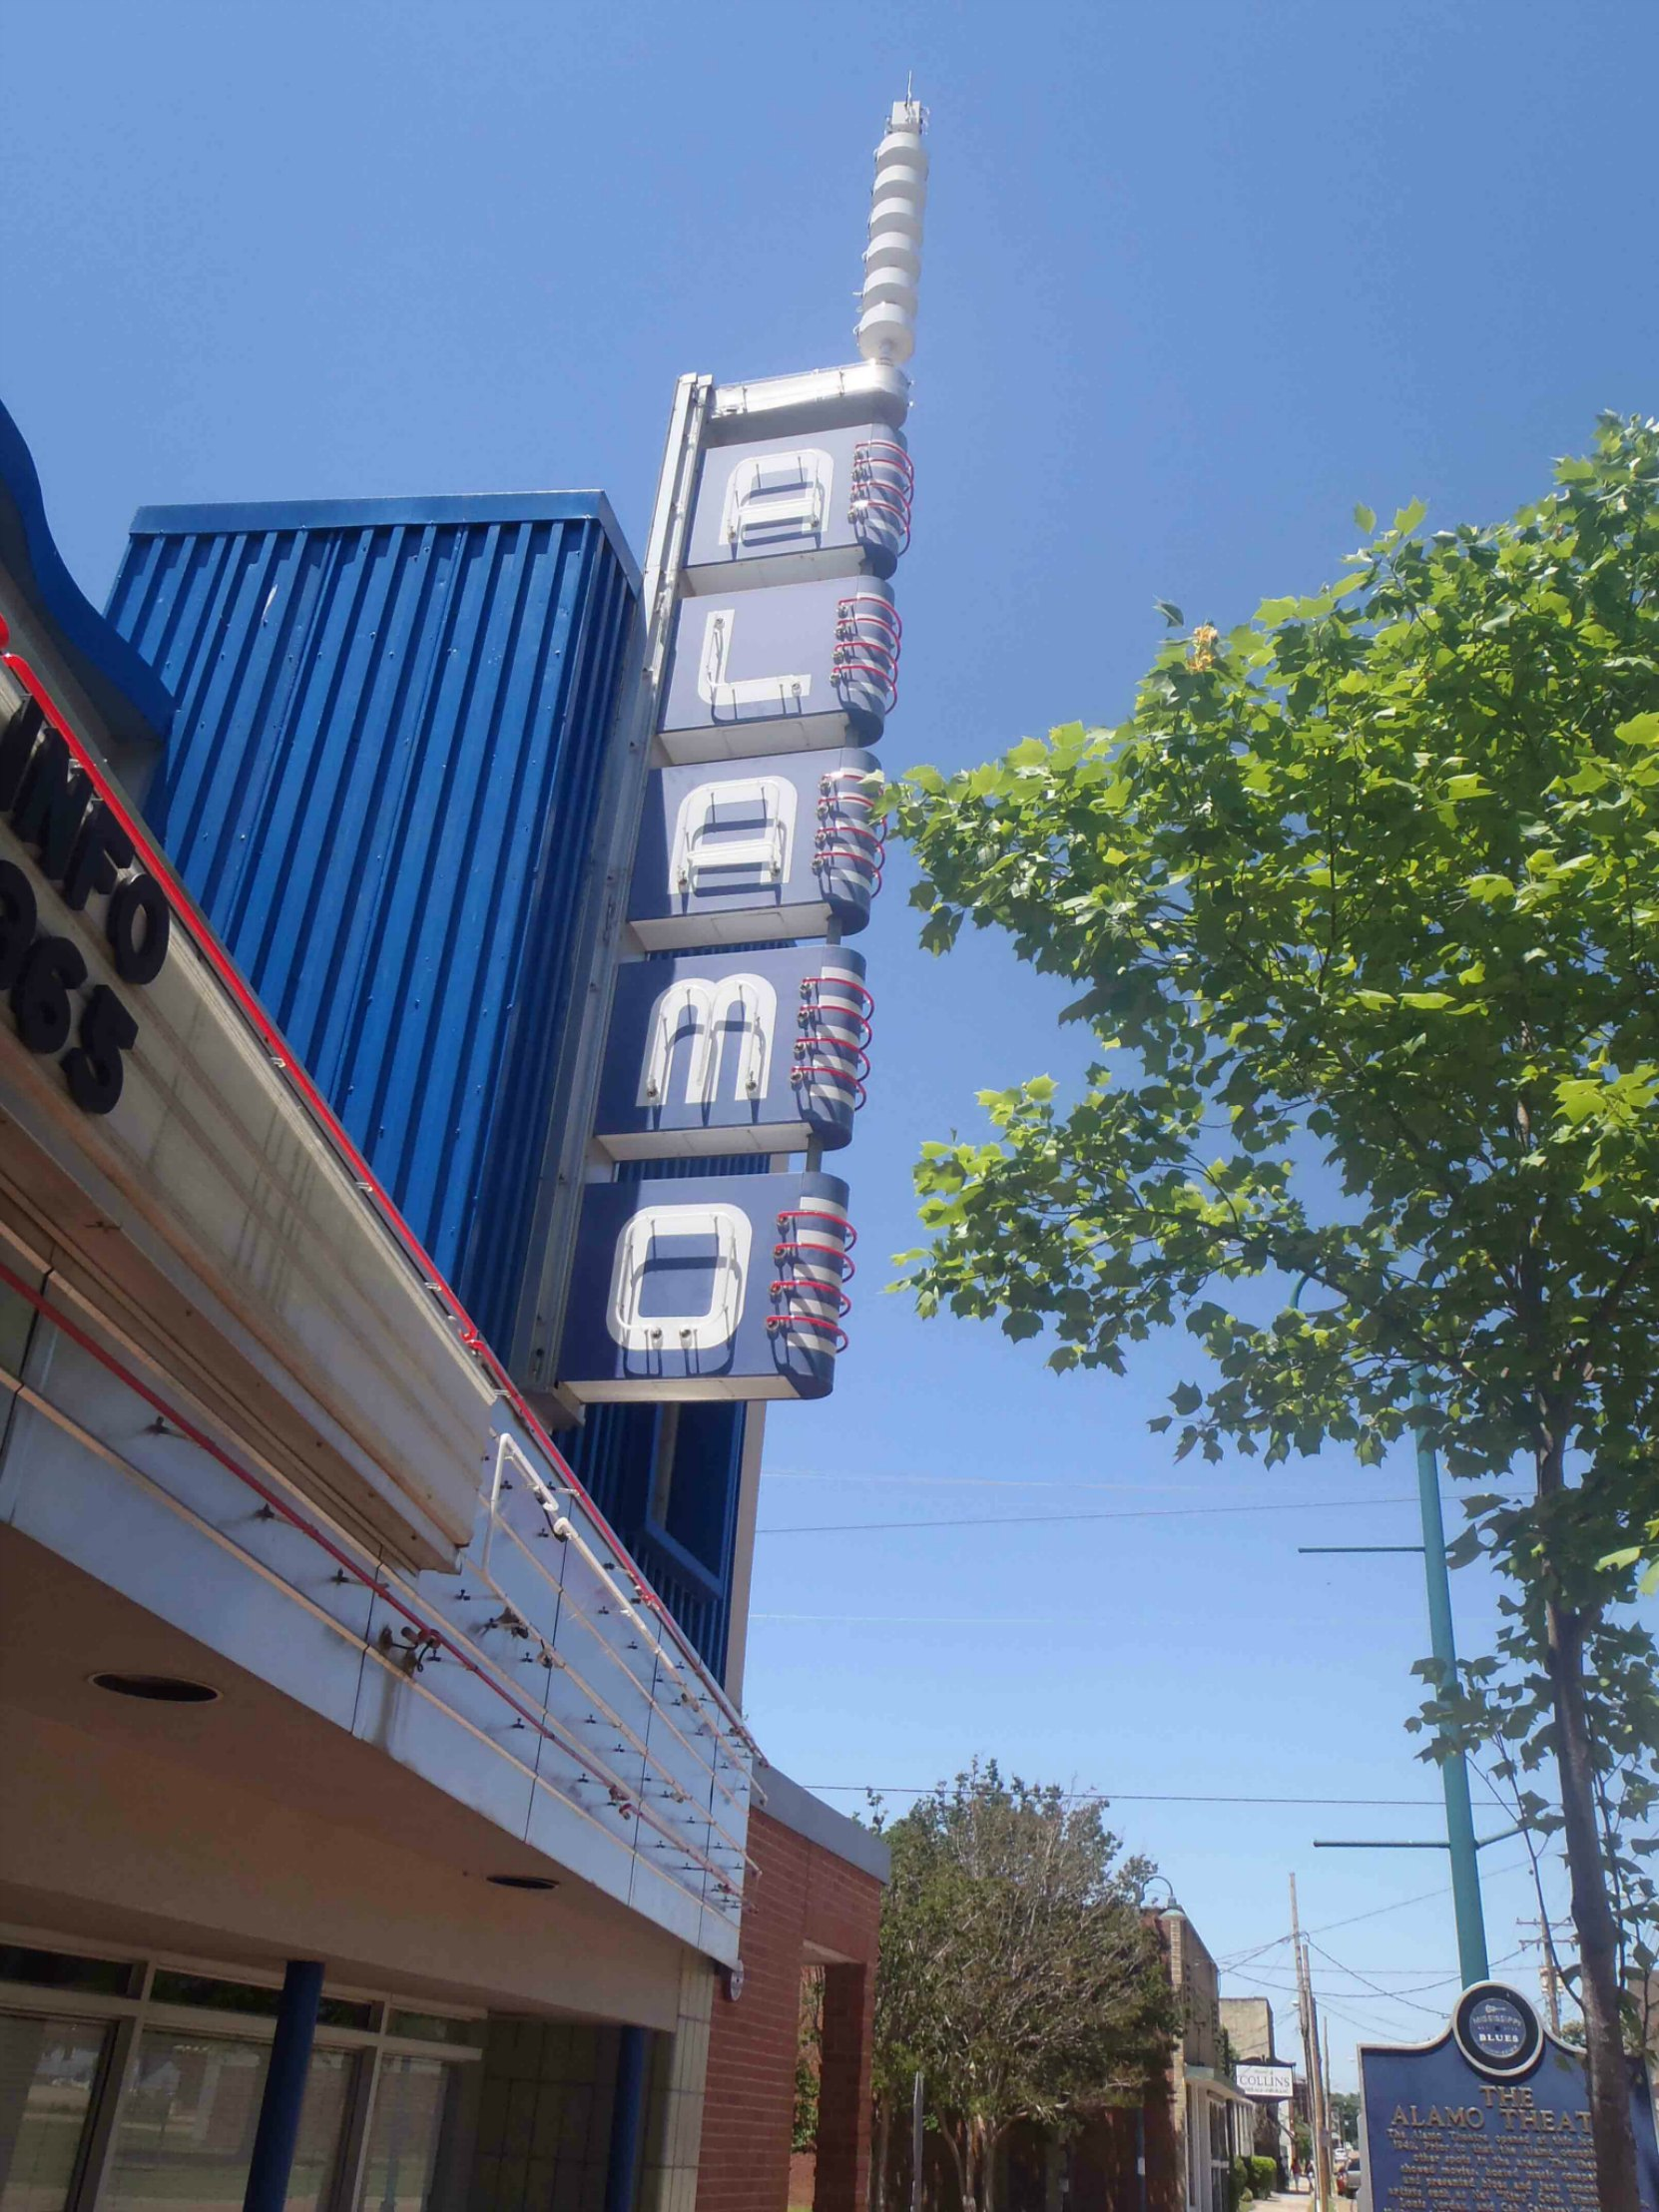 Alamo Theatre sign, Farish Street, Jackson, Mississippi